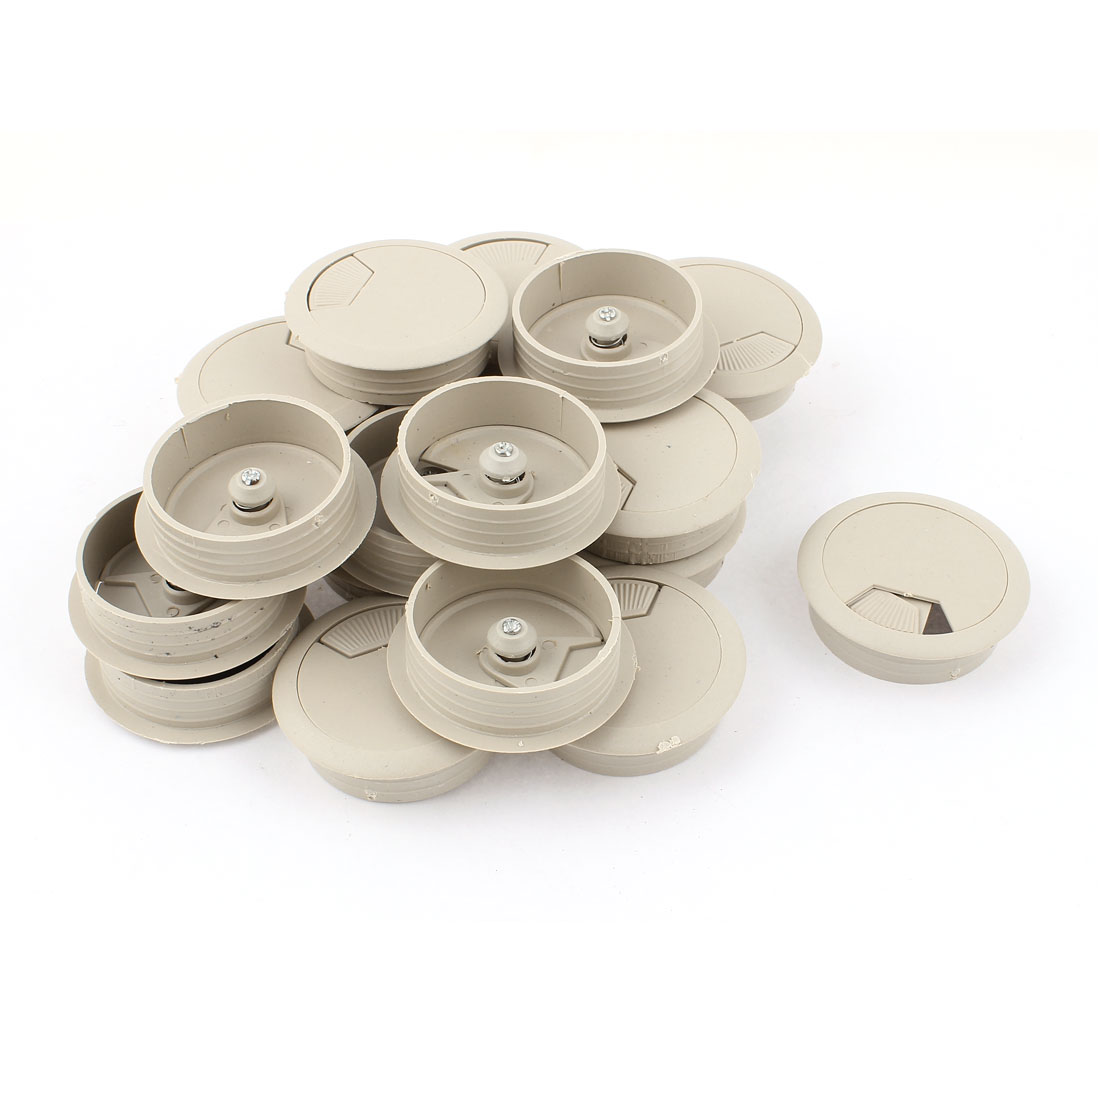 20 Pcs Office Computer Desk Cable Hole Covers Plastic Grommets Gray 50mm